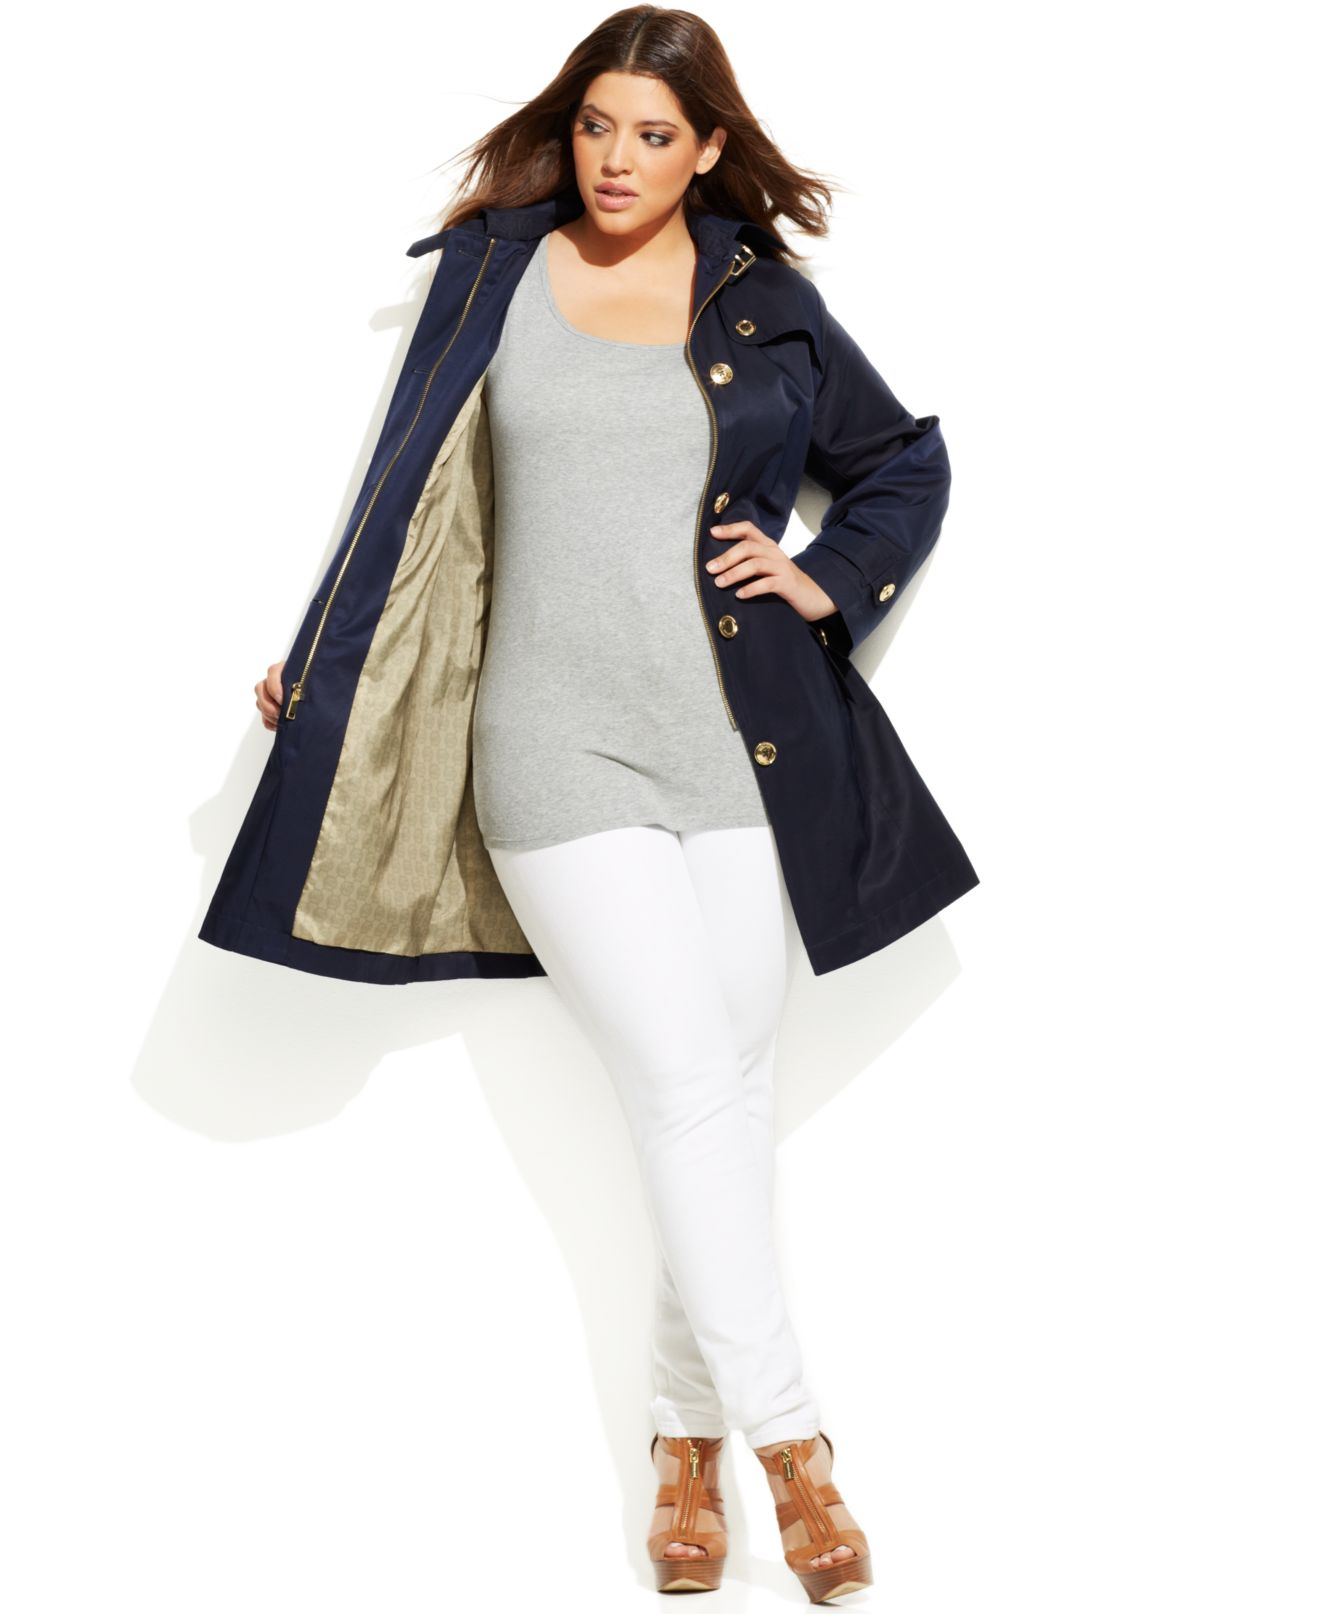 d9696fc2bdc Lyst - Michael Kors Michael Plus Size Hooded Belted Trench Coat in Blue